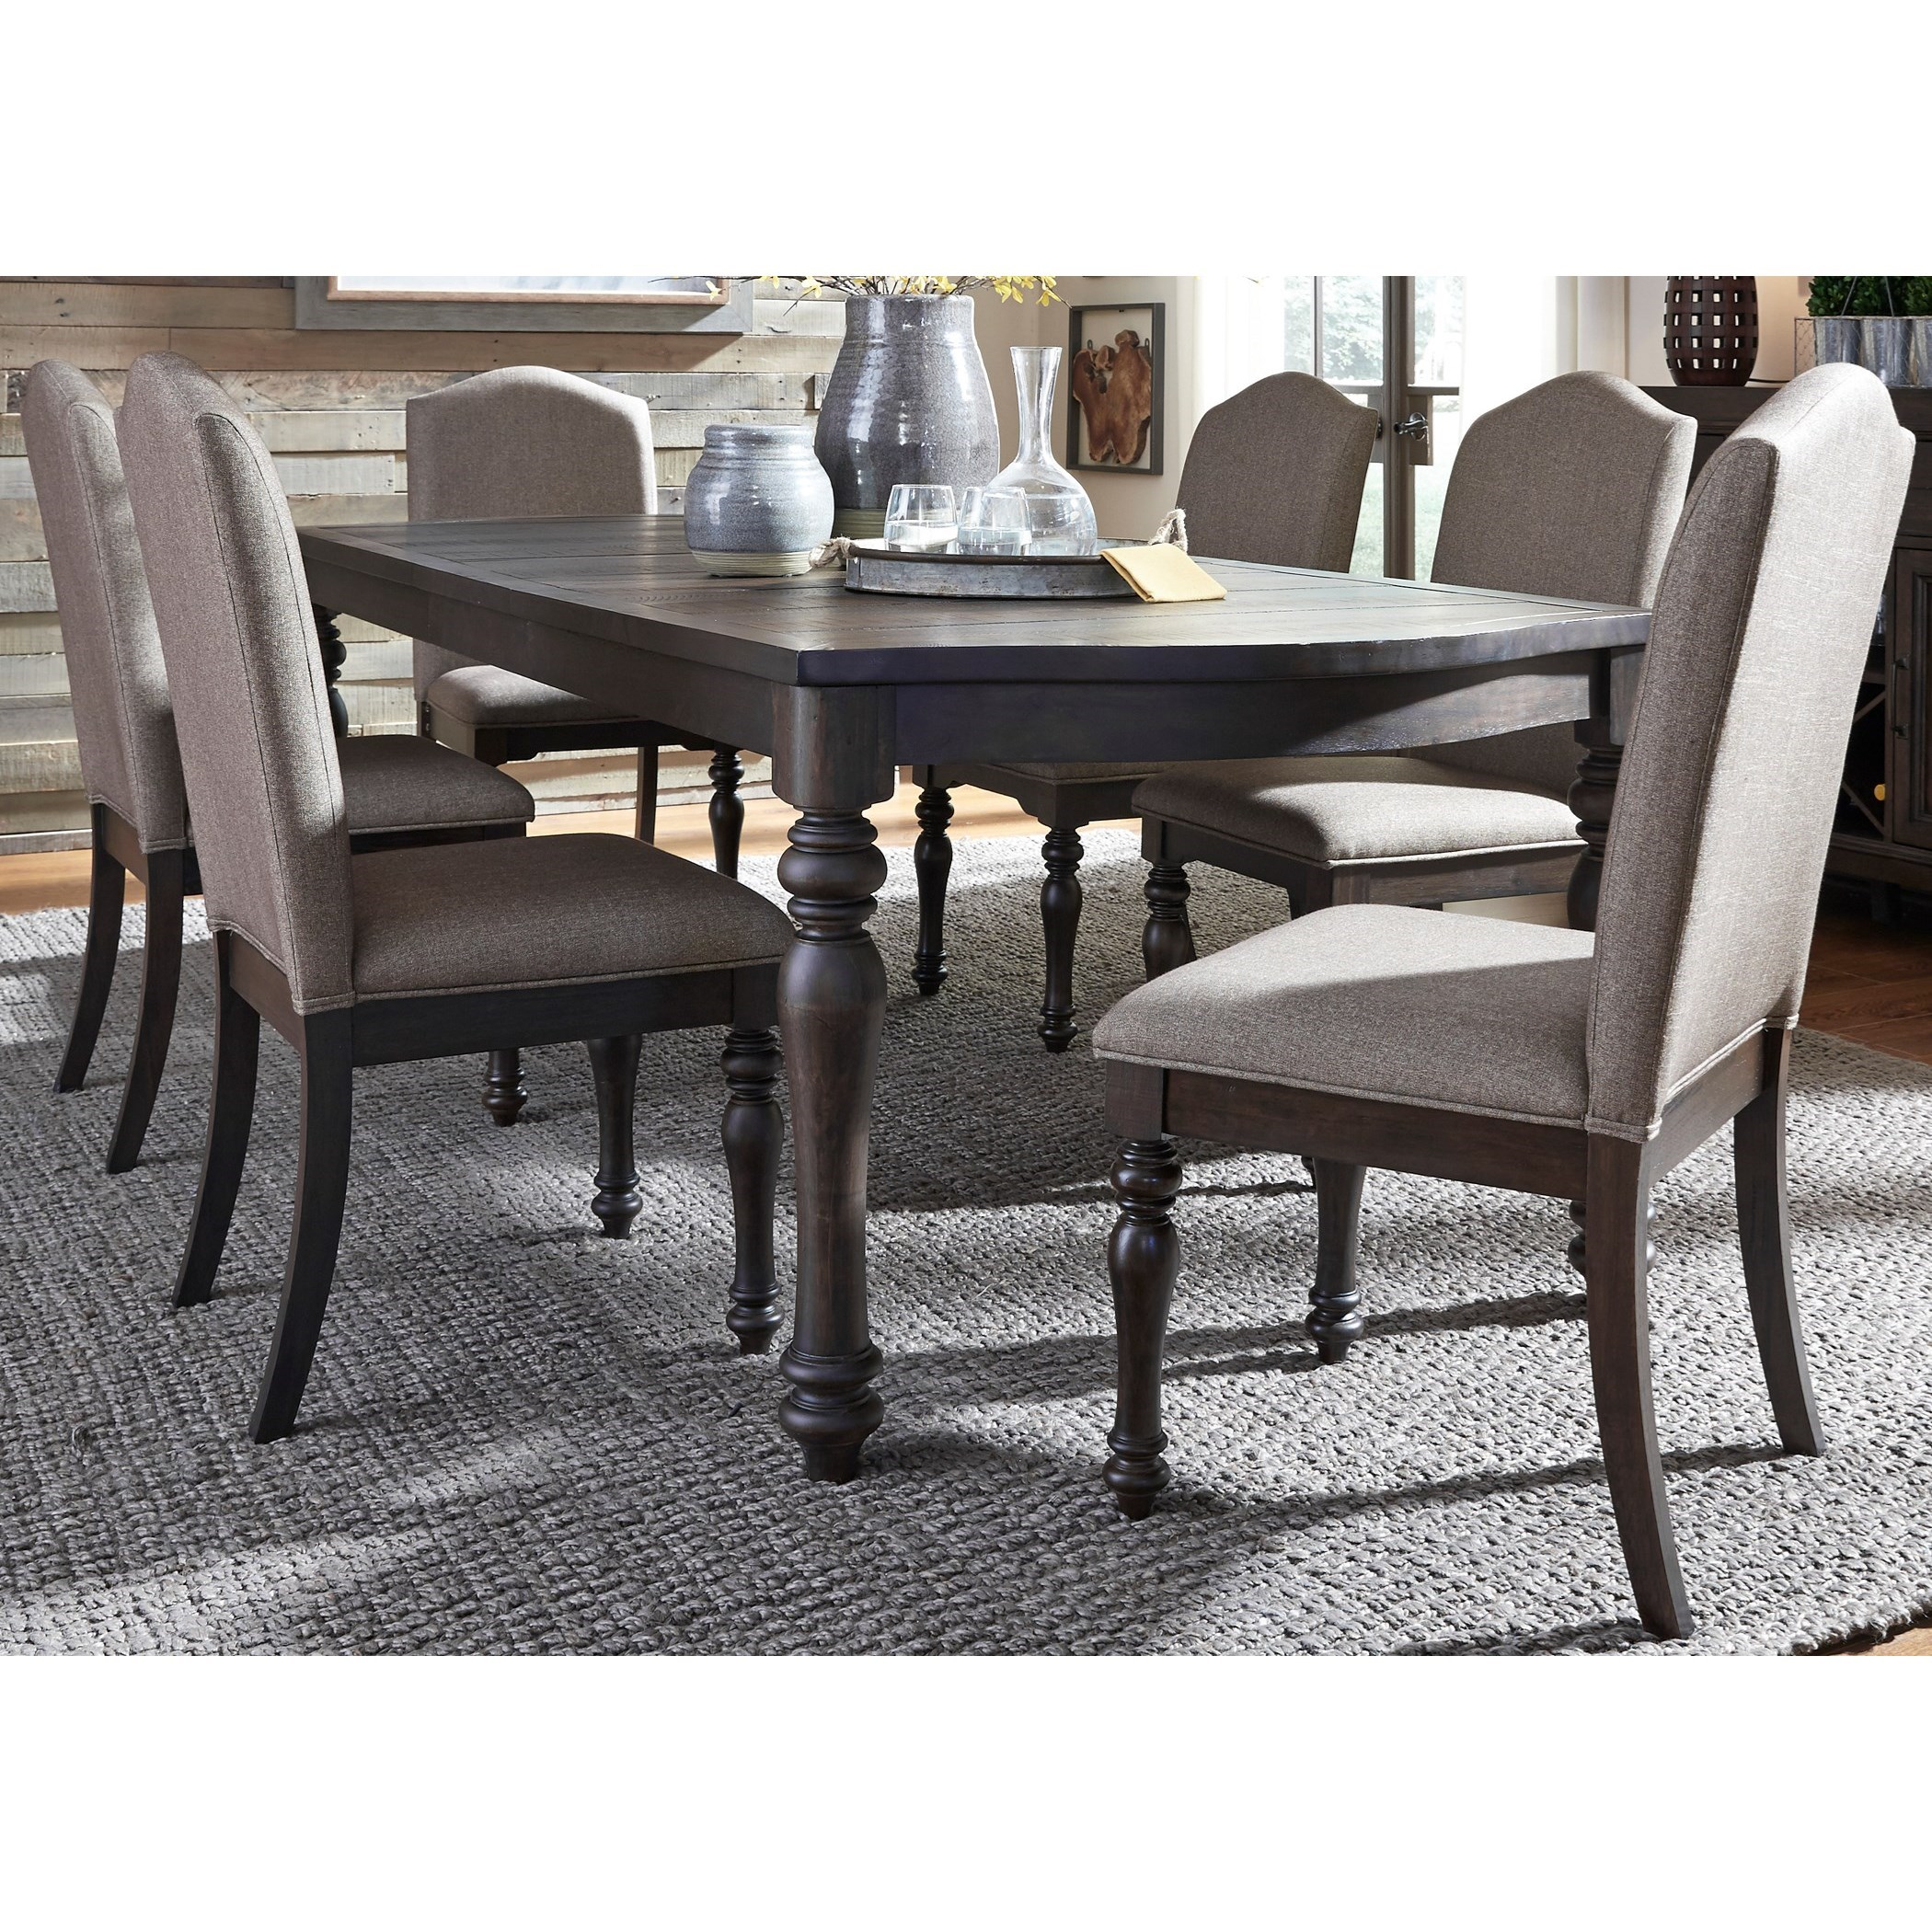 Liberty Furniture Catawba Hills Dining 7 Piece Table with Leaf